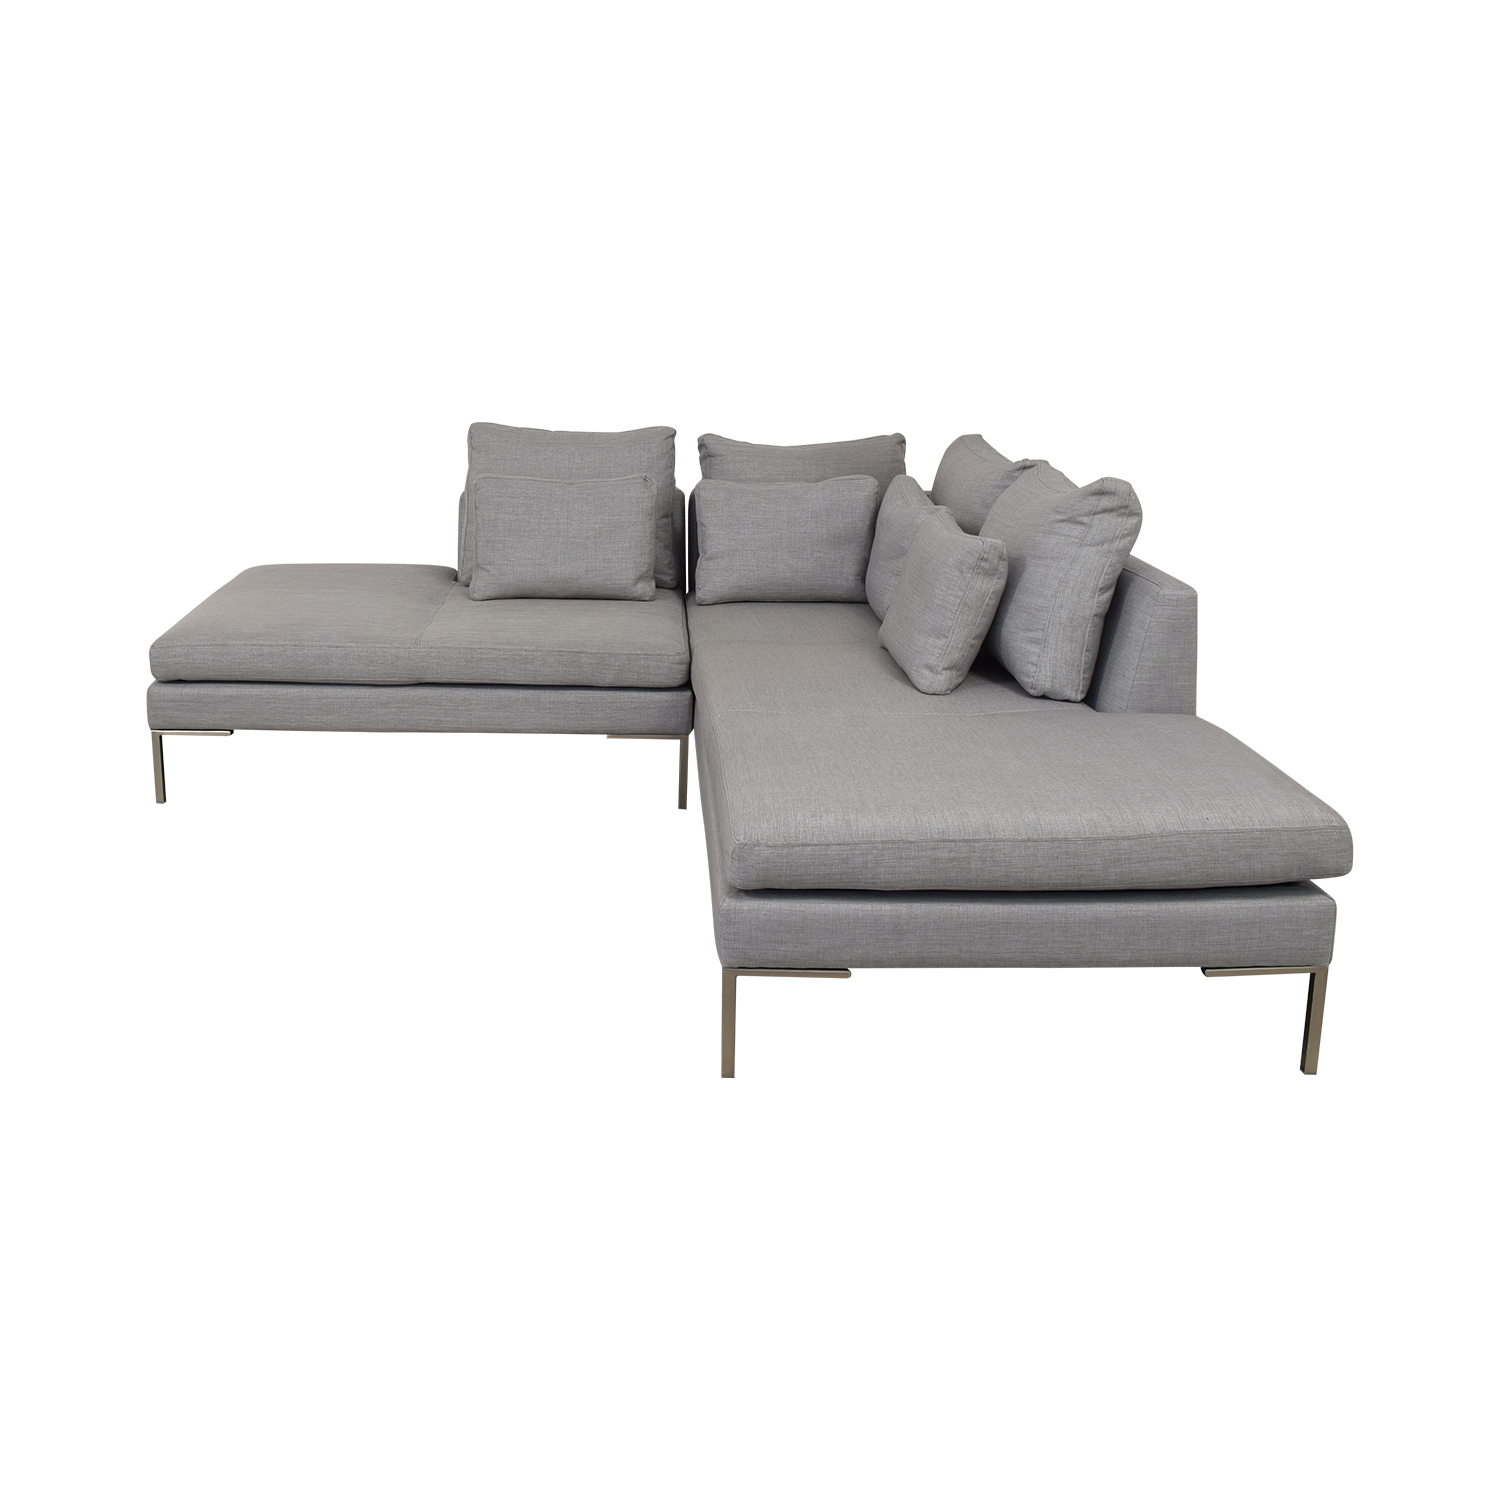 55% OFF - BoConcept BoConcept Istra Two Sectional / Sofas